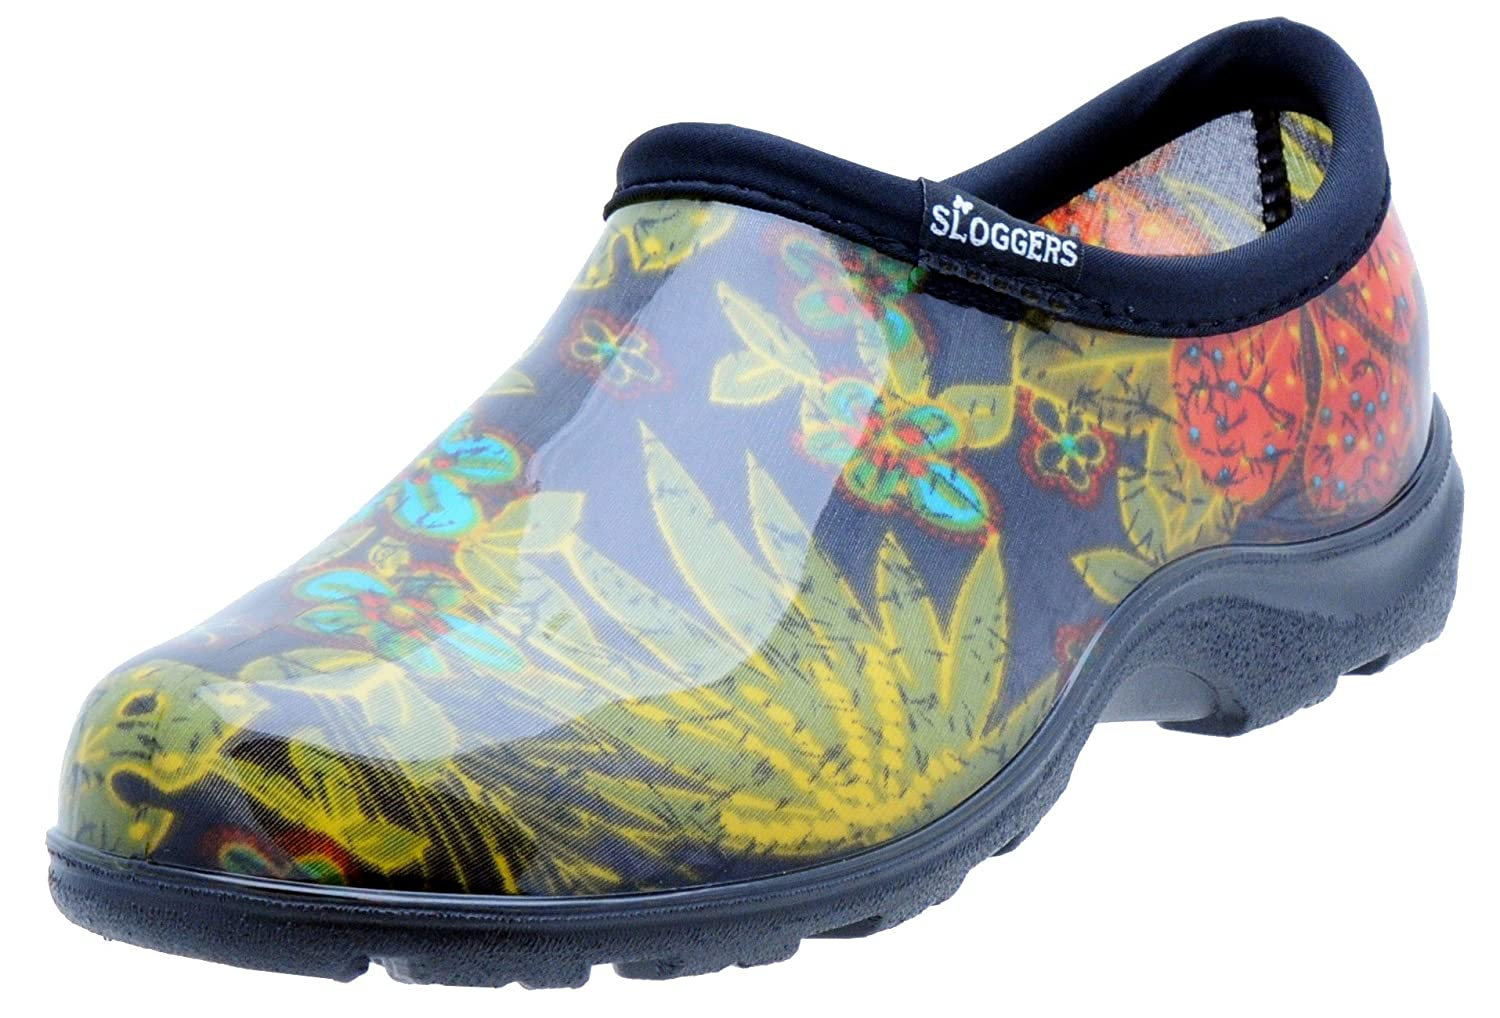 Sloggers Women's WaterproofRain and Garden Shoe with Comfort Insole, Midsummer Black, Size 8, Style 5102BK08